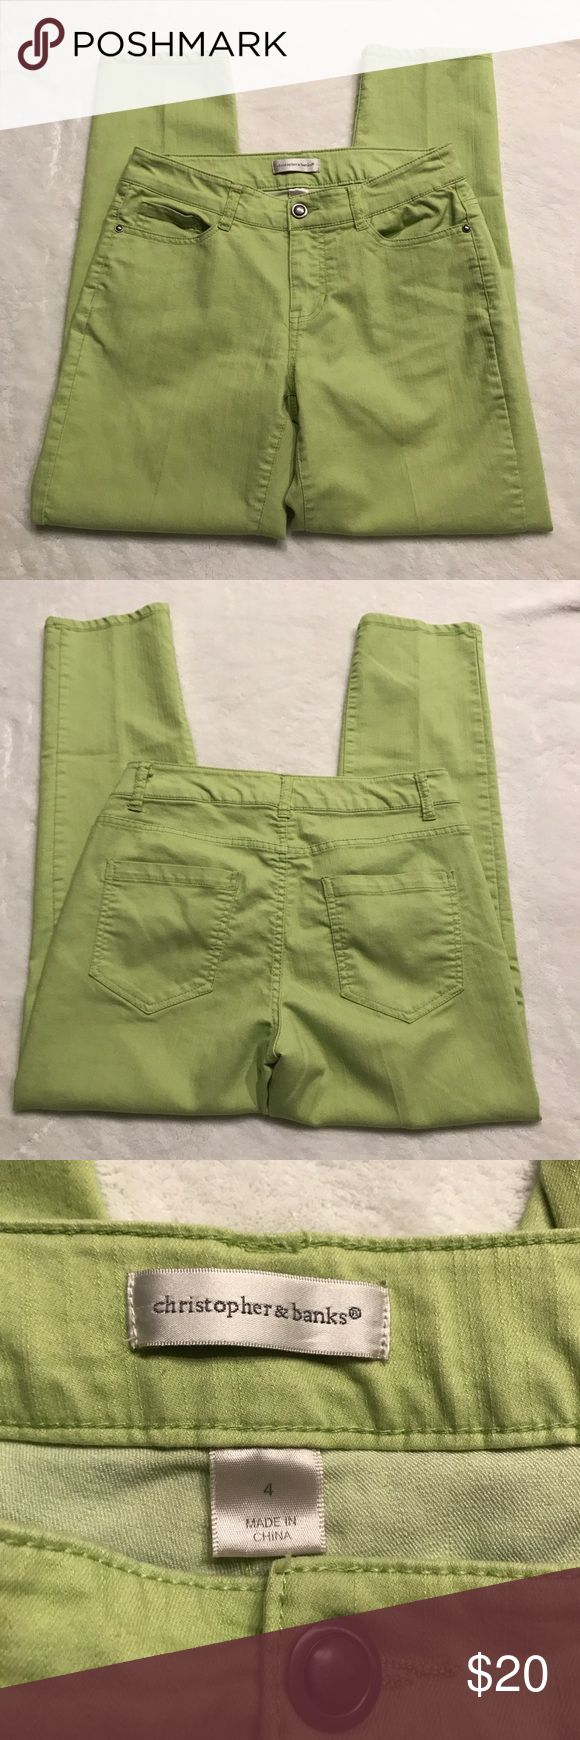 Christopher & Banks Lime Green Ankle Pants Cute lime green color Ankle Pants inseam 27 Christopher & Banks Pants Ankle & Cropped